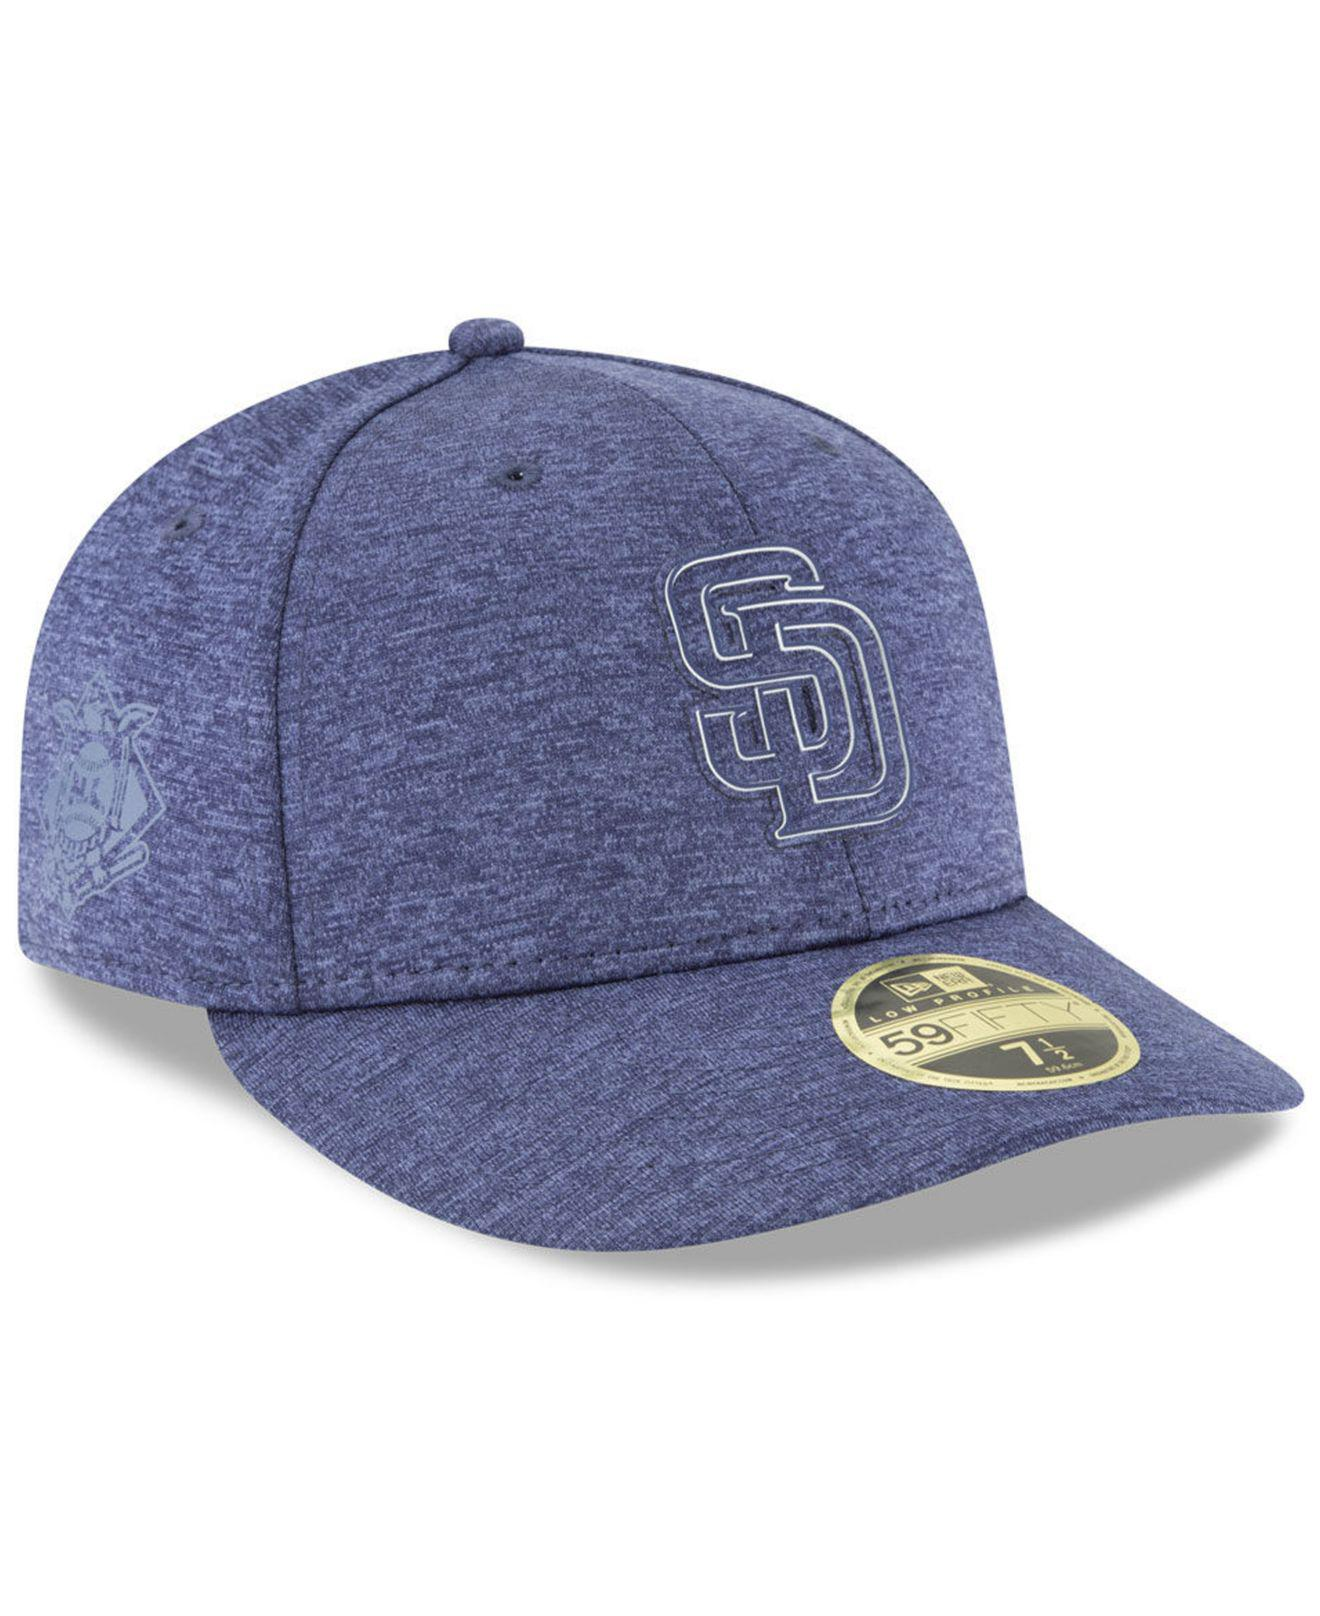 KTZ. Men s Blue San Diego Padres Clubhouse Low Crown 59fifty Fitted Cap 15cf492f6d6d